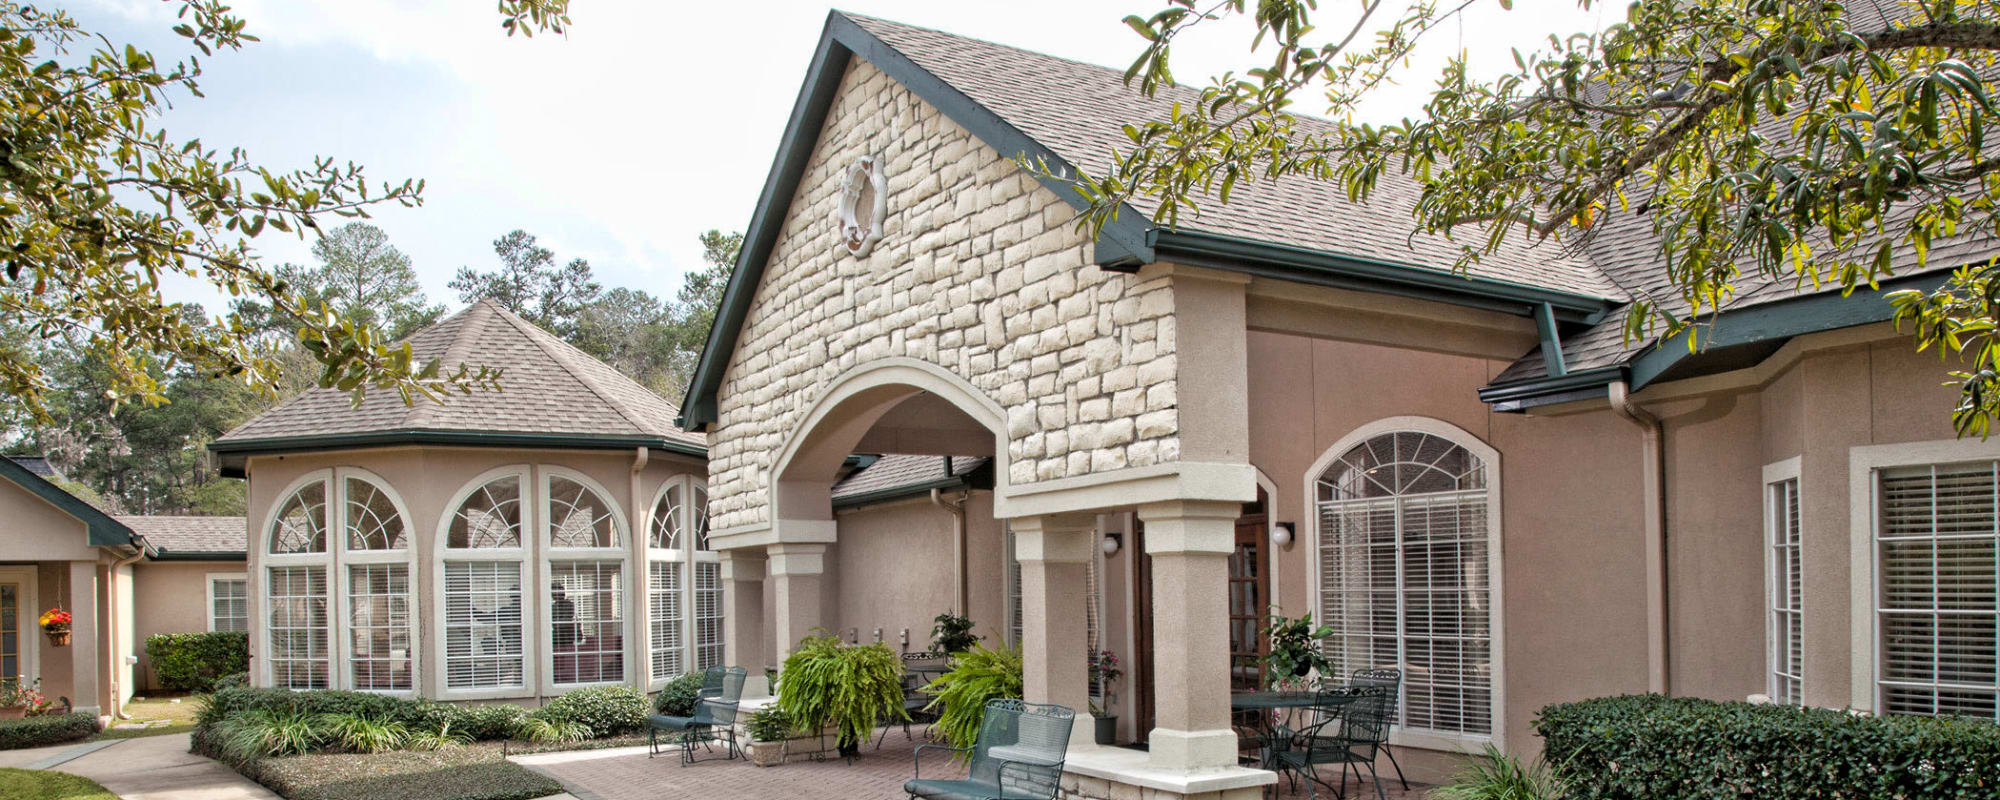 Services & Amenities at Carriage Inn Conroe in Conroe, Texas